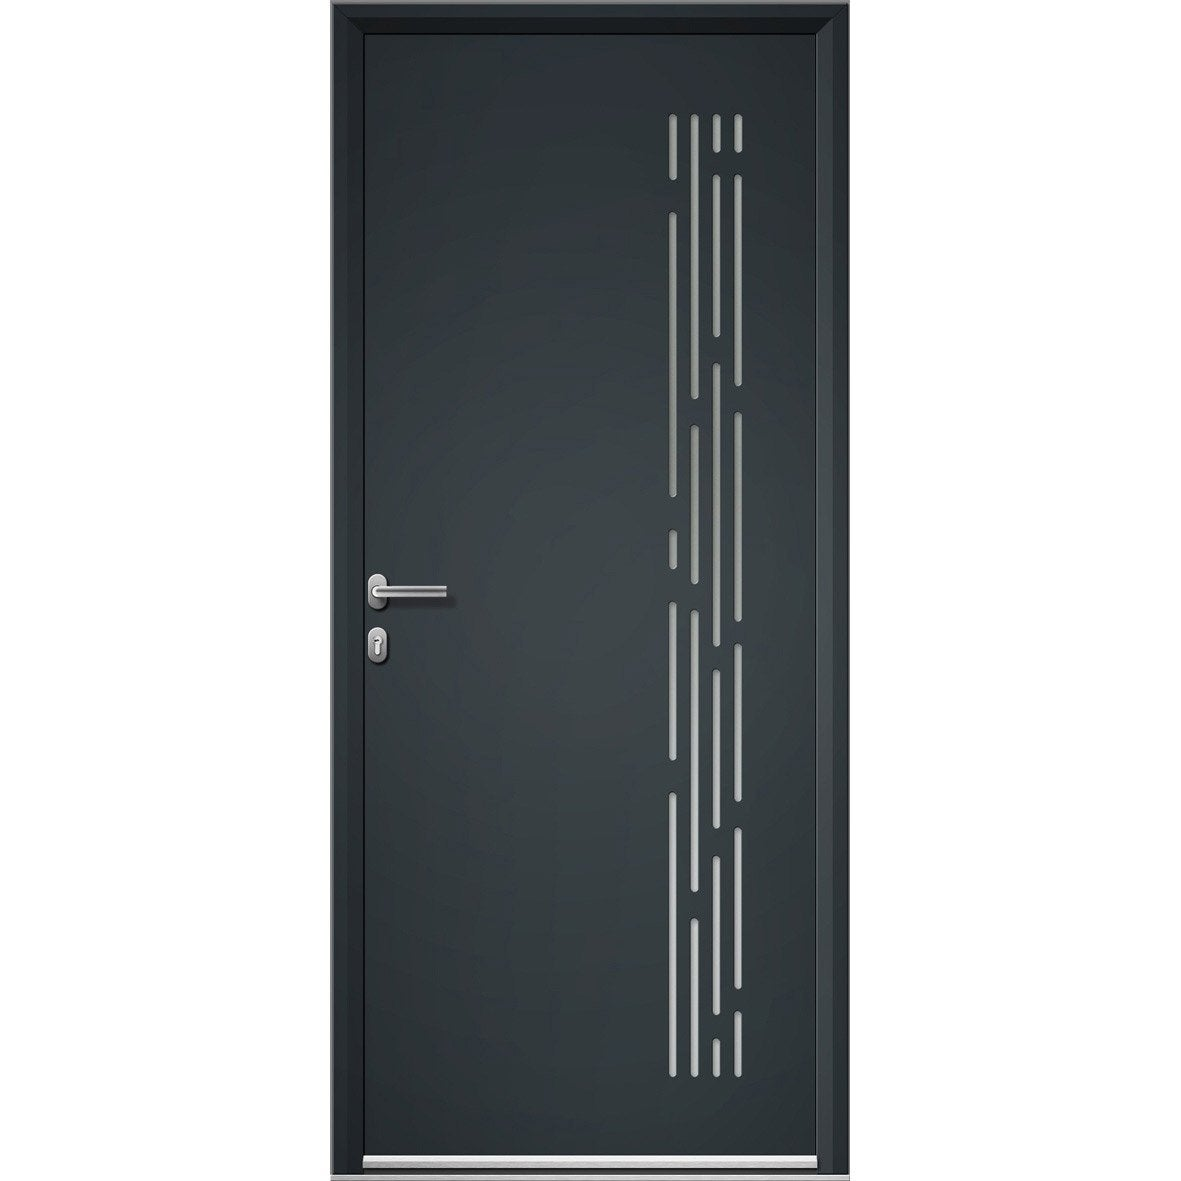 porte d 39 entr e sur mesure en aluminium norfolk artens leroy merlin. Black Bedroom Furniture Sets. Home Design Ideas